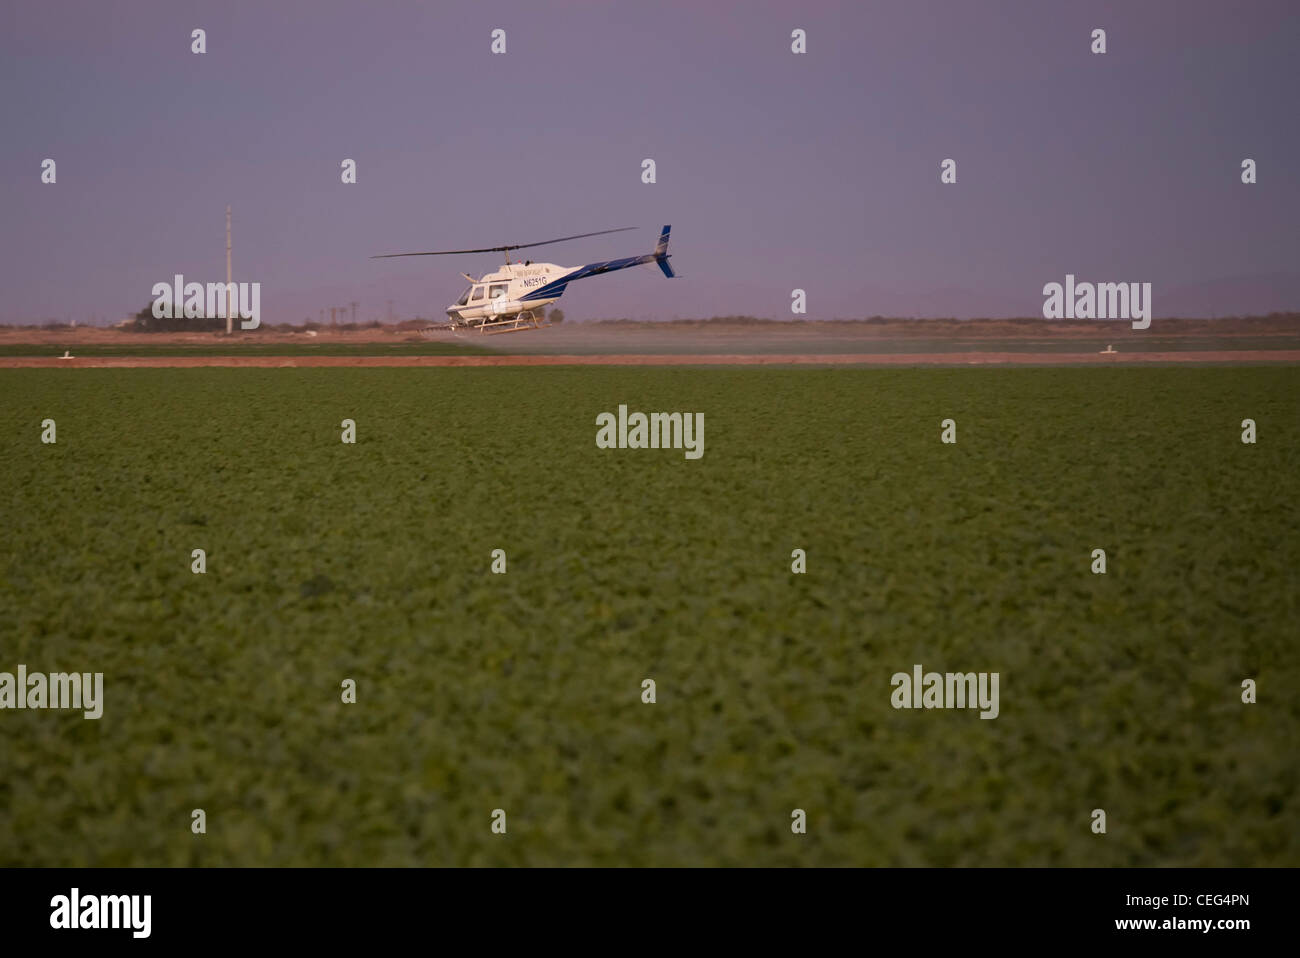 Holtville, California - A helicopter sprays a field in the Imperical Valley. - Stock Image